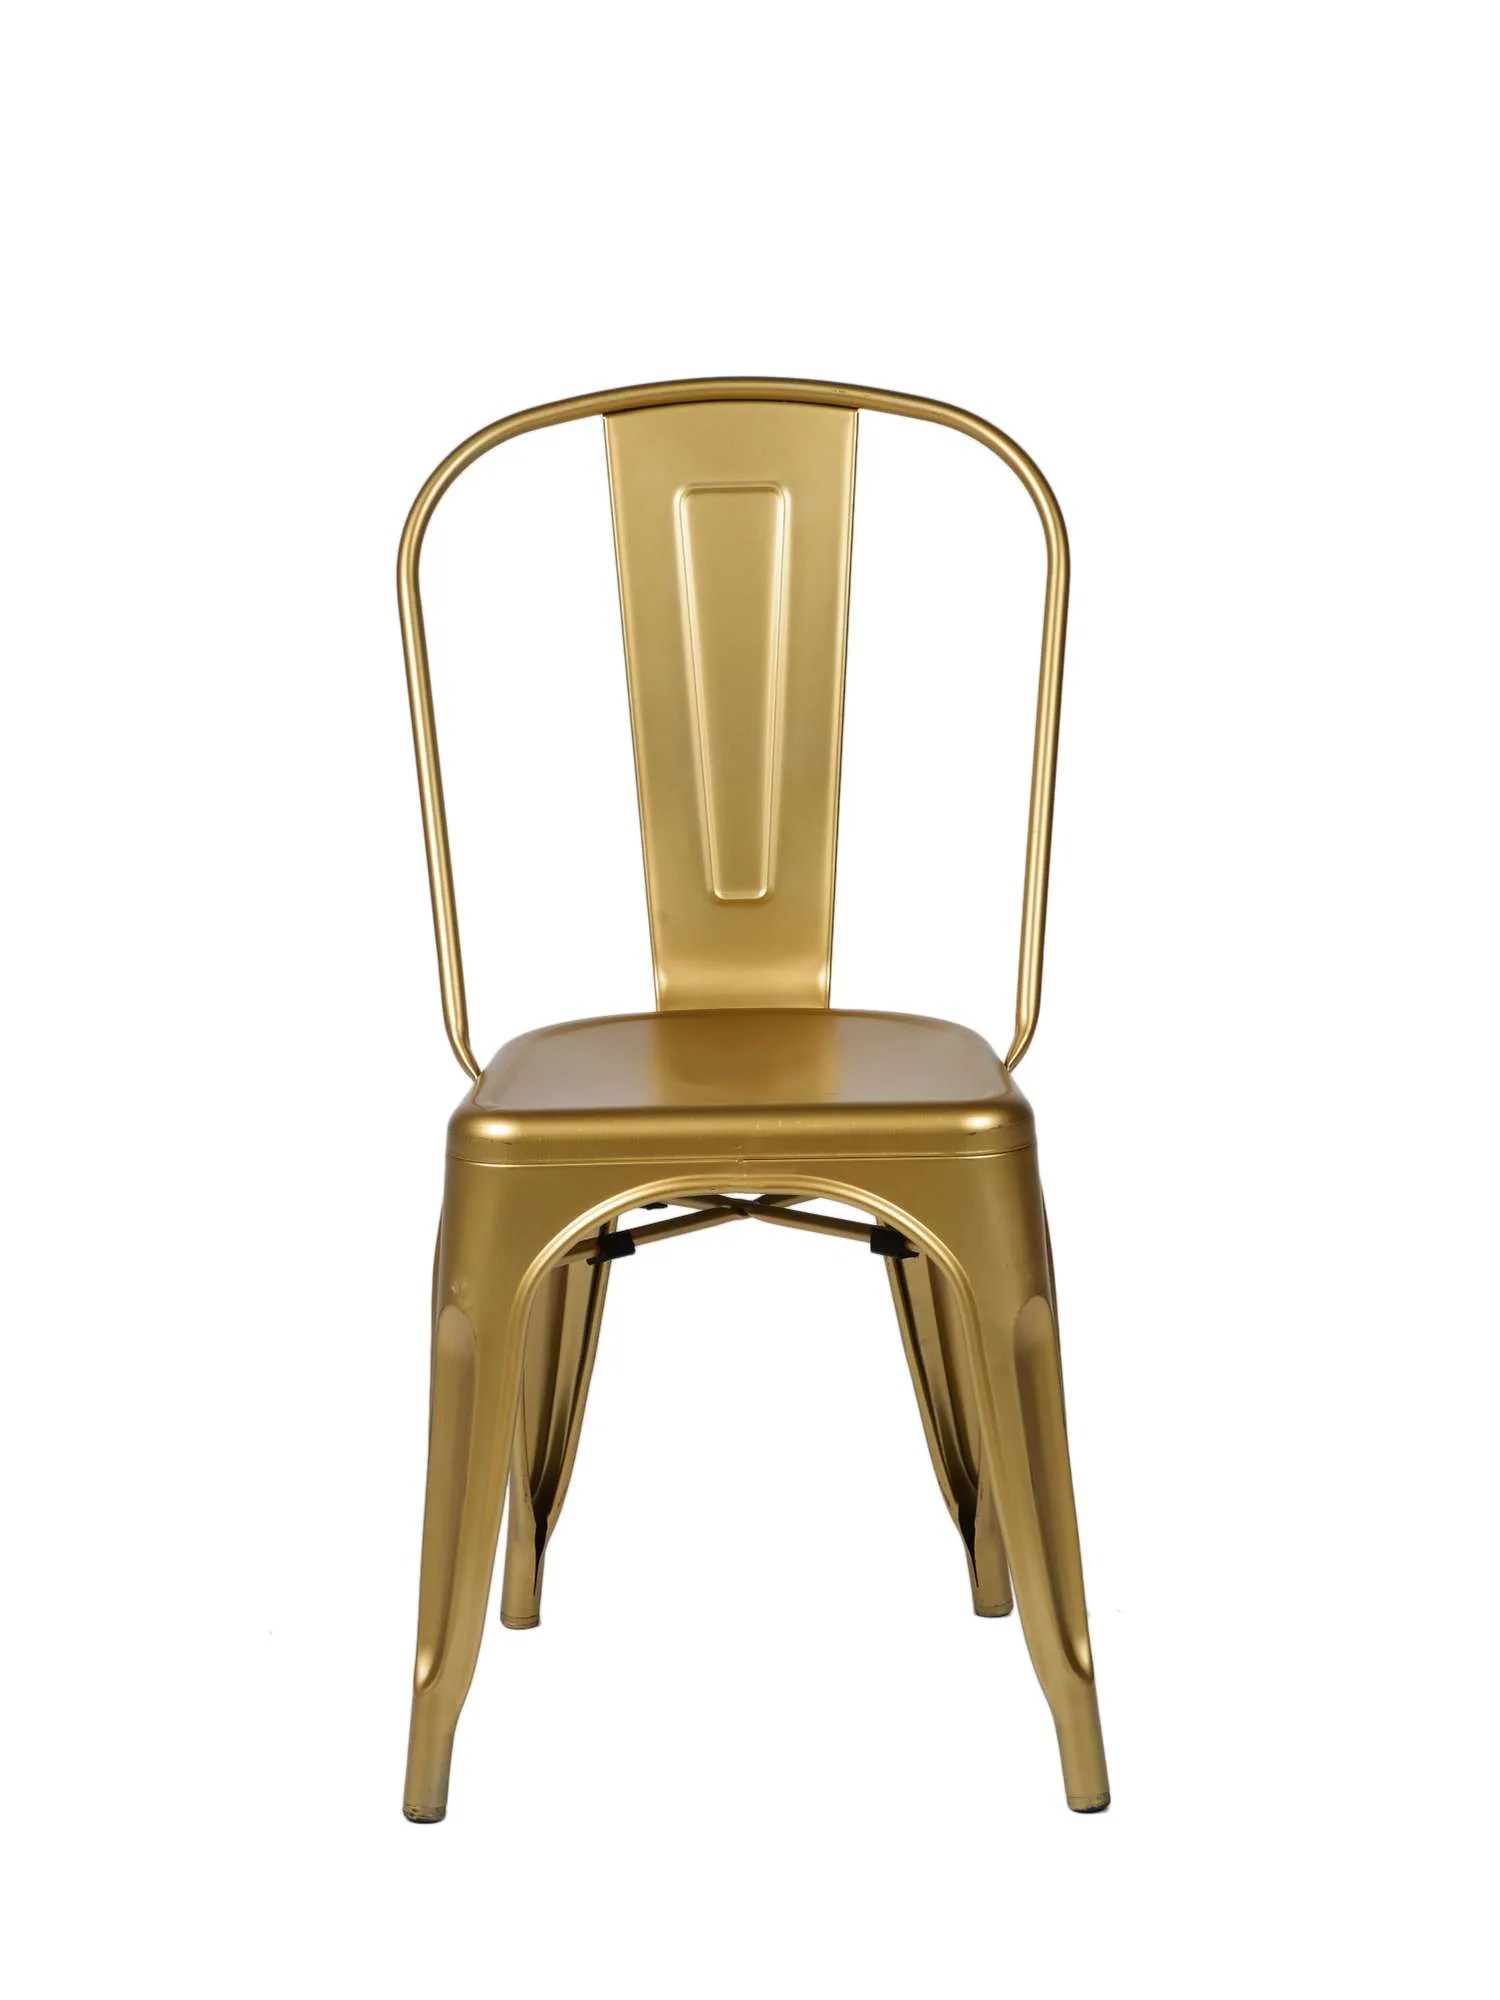 steel chair gold childs plastic table and chairs commercial seating products oscar tolix style stackable dining